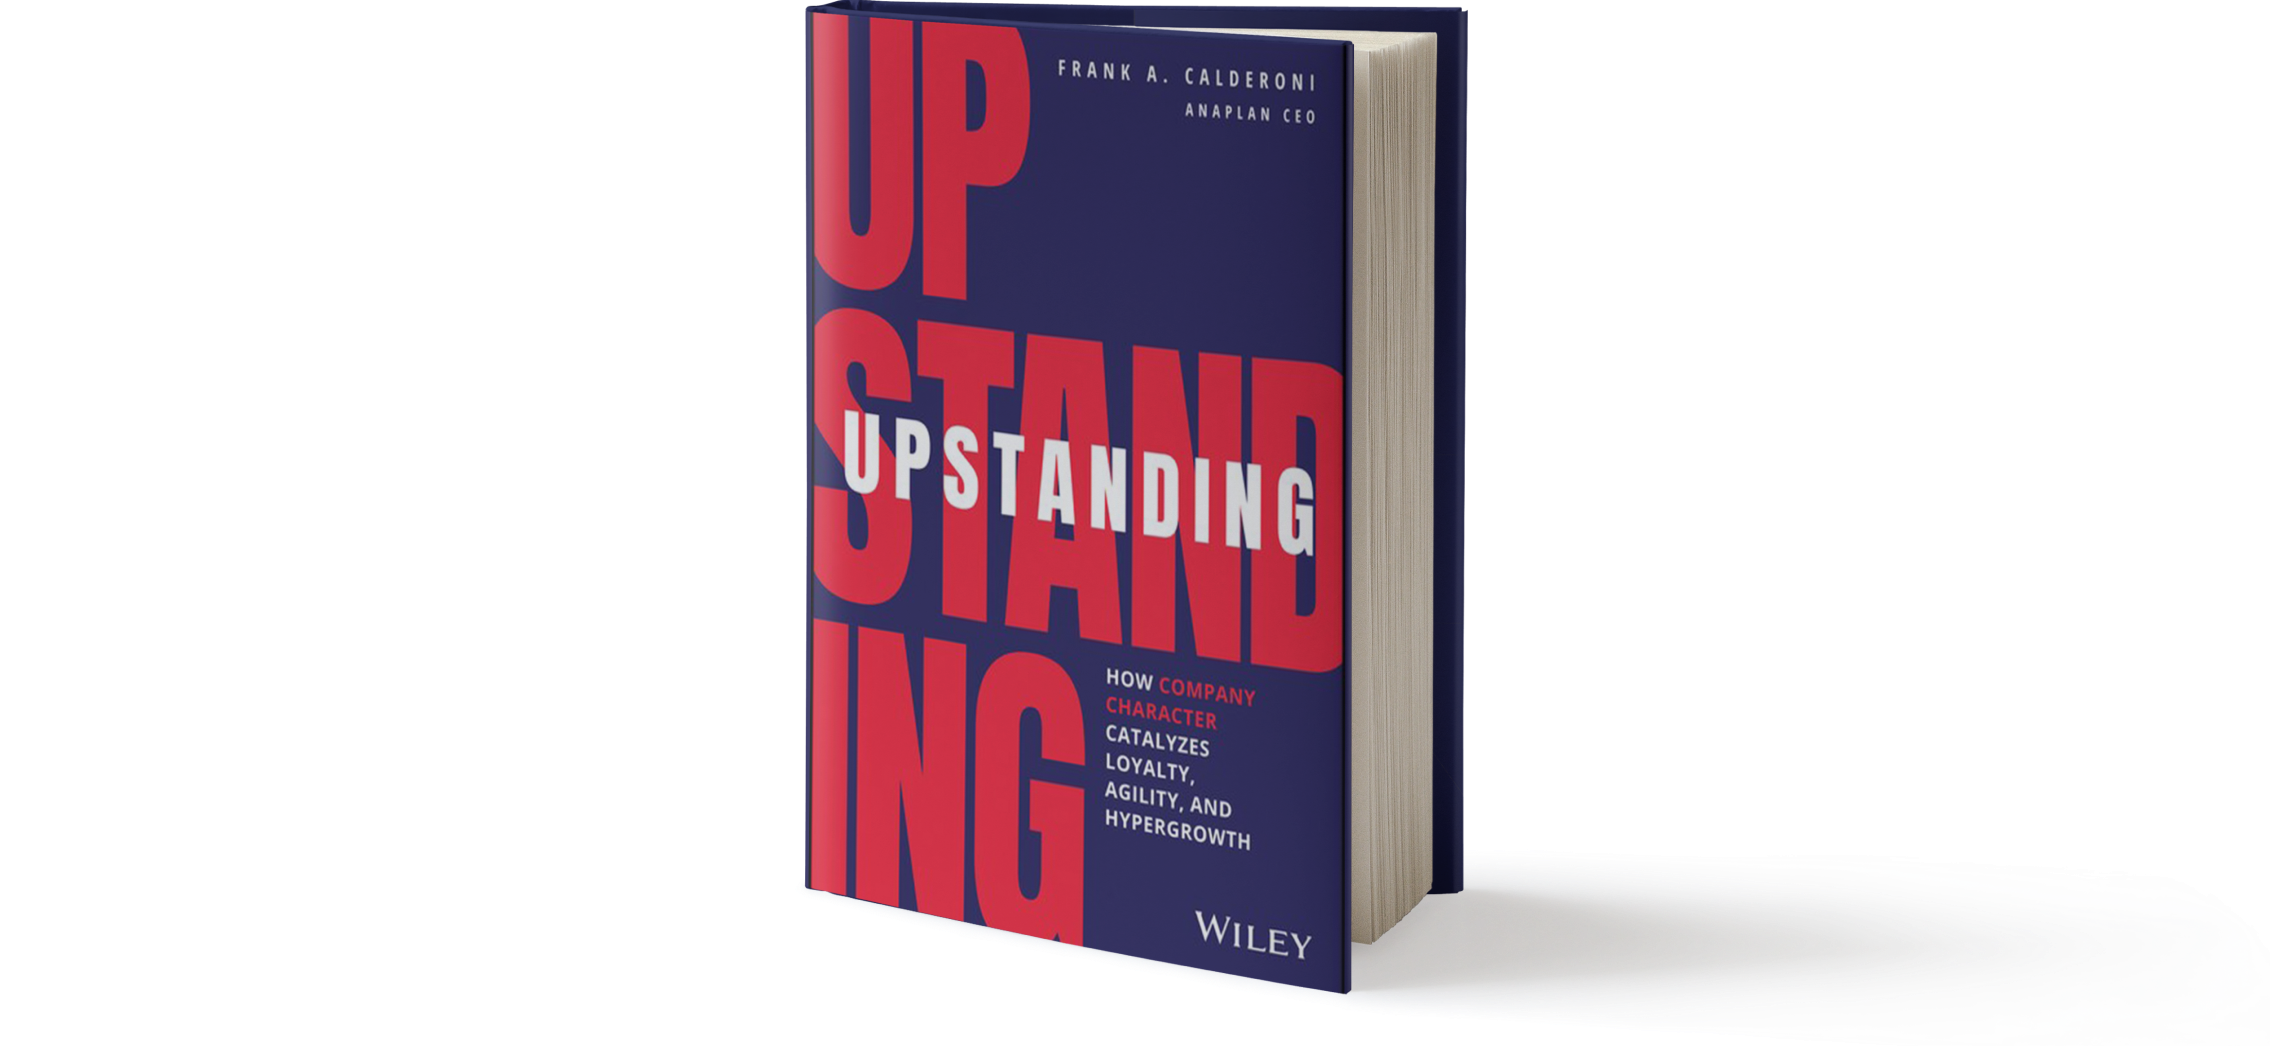 Upstanding: How Company Character Catalyzes Loyalty, Agility, and Hypergrowth